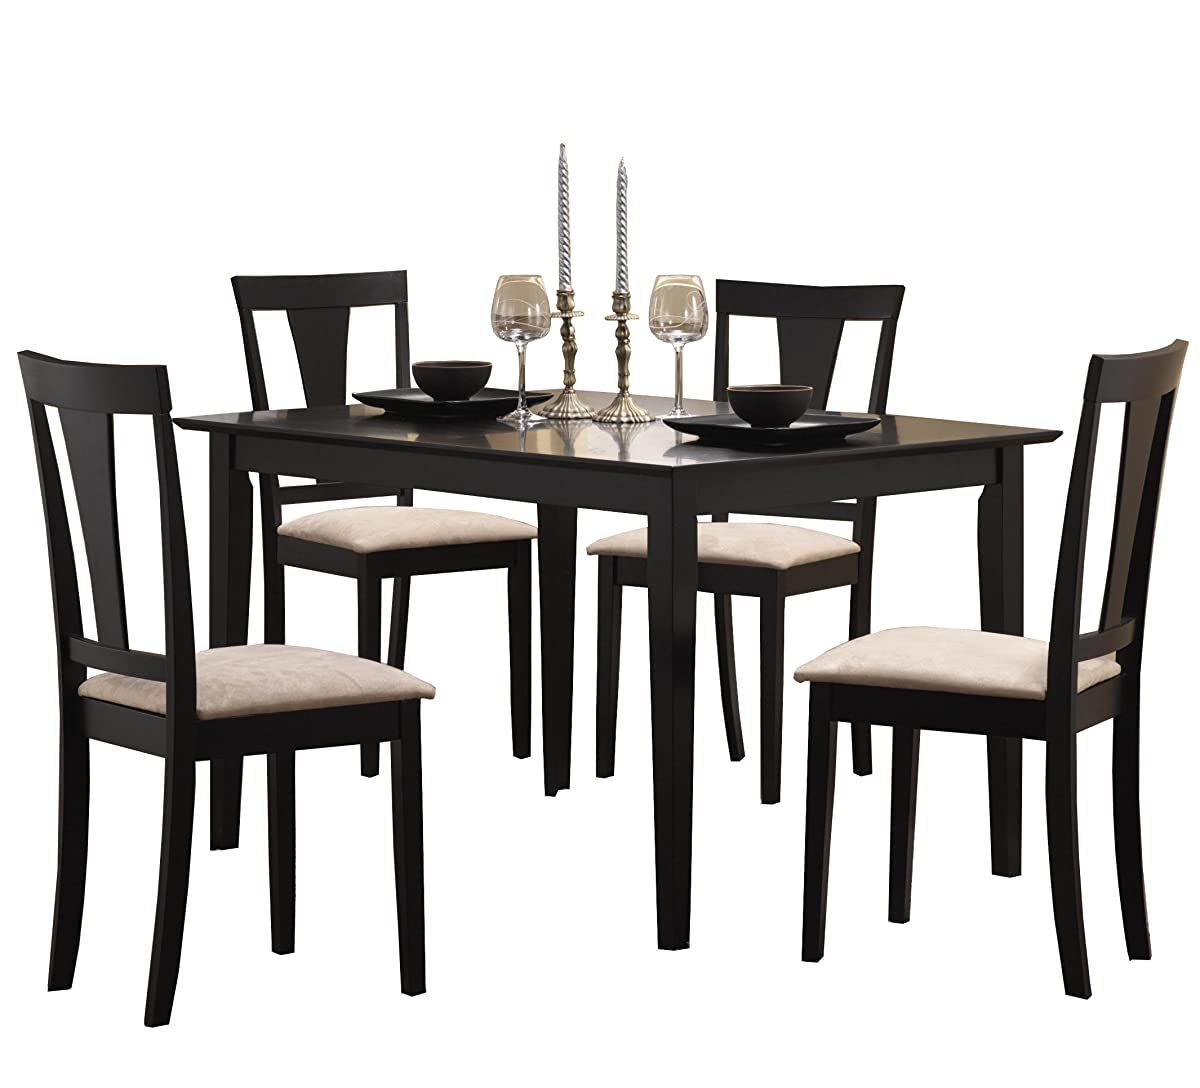 Casual Dining Tables And Chairs: Coaster 5pc Casual Dining Table And Chairs Set In Black Finish